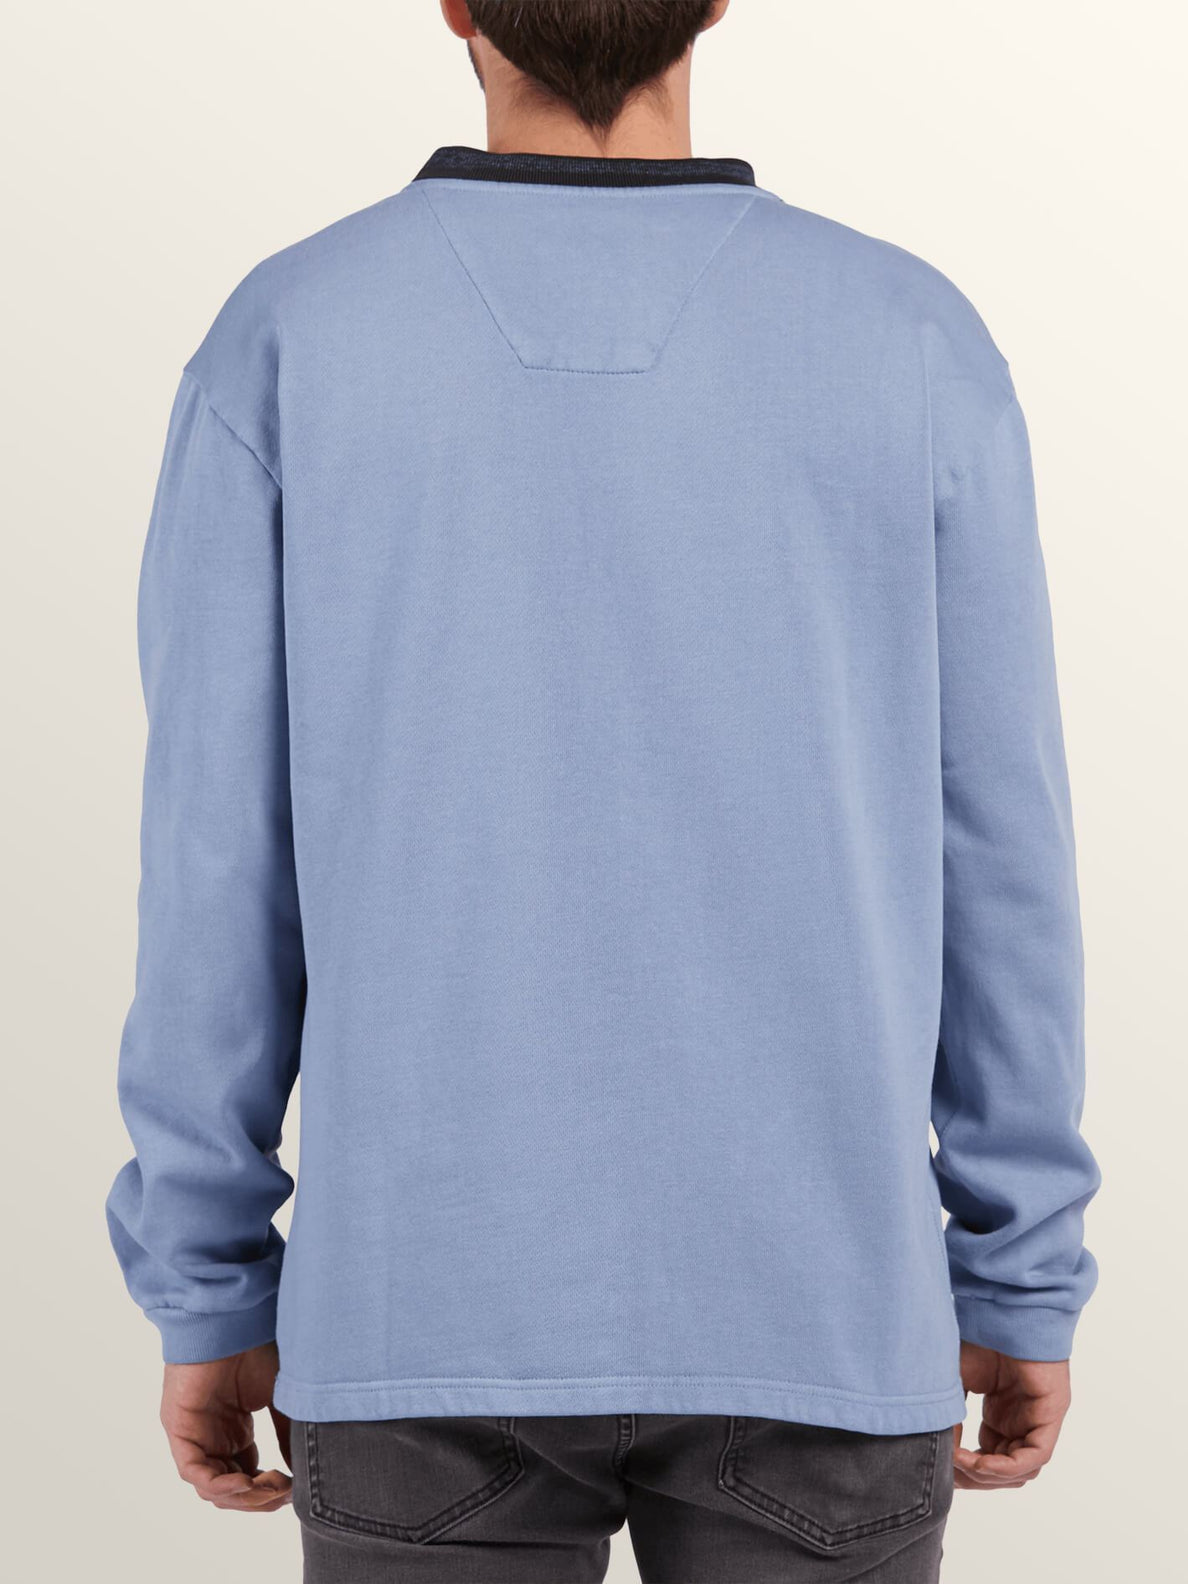 Noa Noise Fleece Sweatshirts - Stone Blue